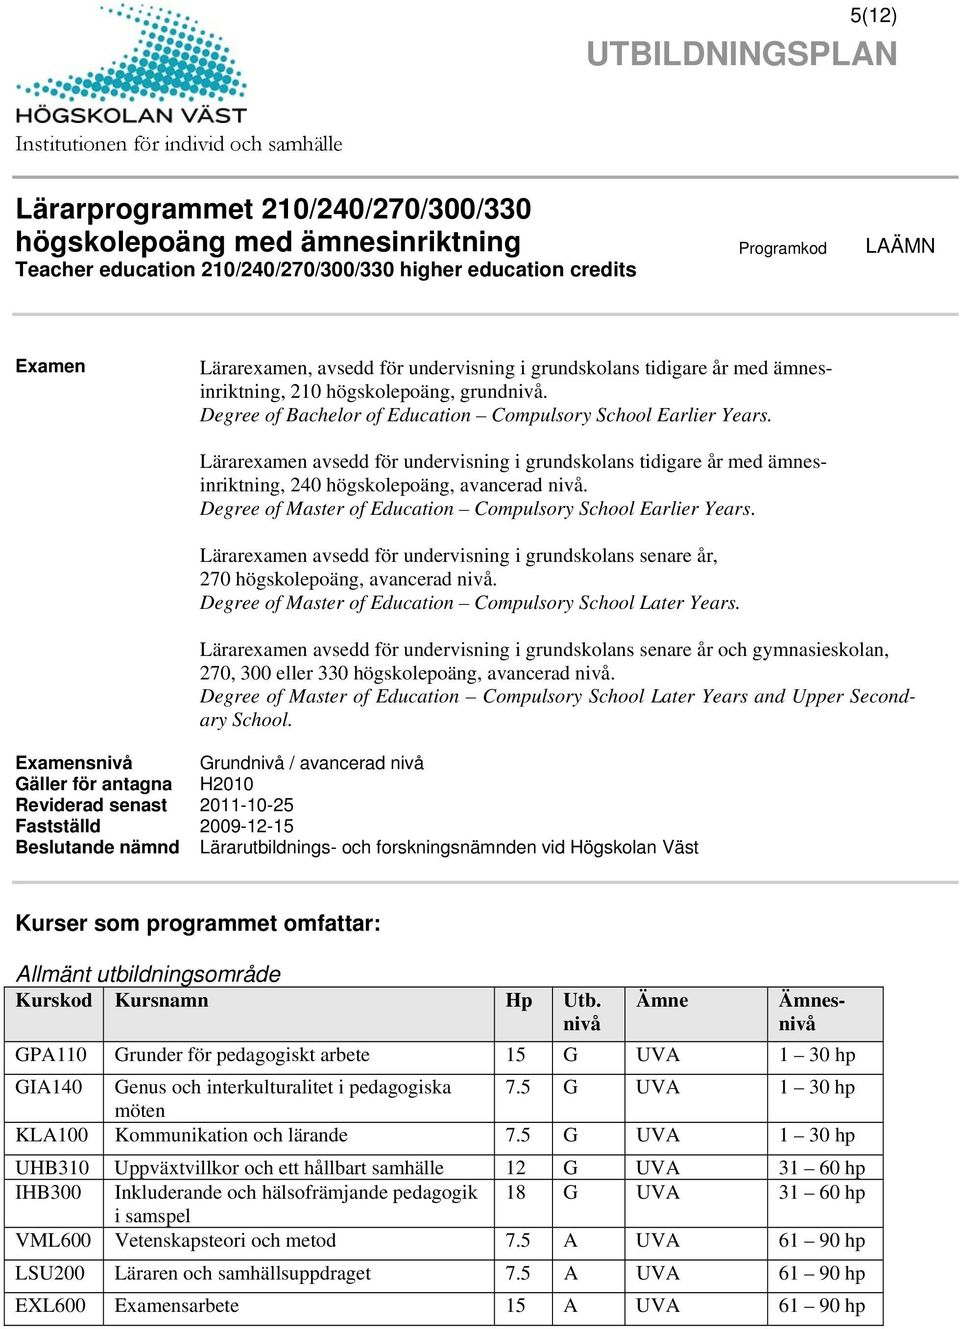 Lärarexamen avsedd för undervisning i grundskolans tidigare år med ämnesinriktning, 240 högskolepoäng, avancerad. Degree of Master of Education Compulsory School Earlier Years.